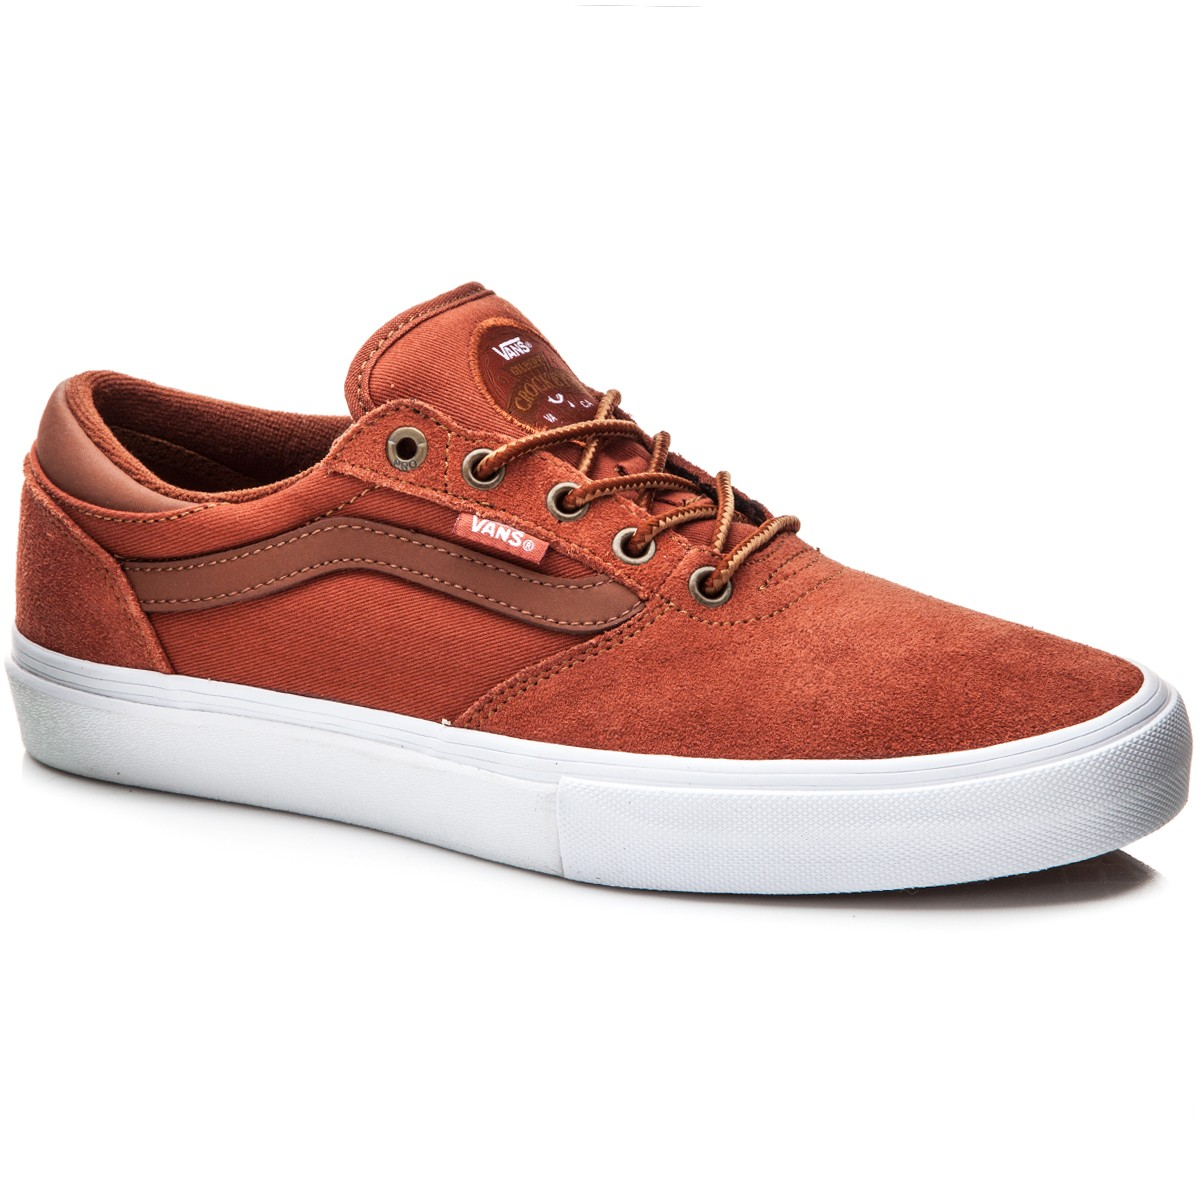 Vans Gilbert Crockett Pro Shoes - Auburn/White